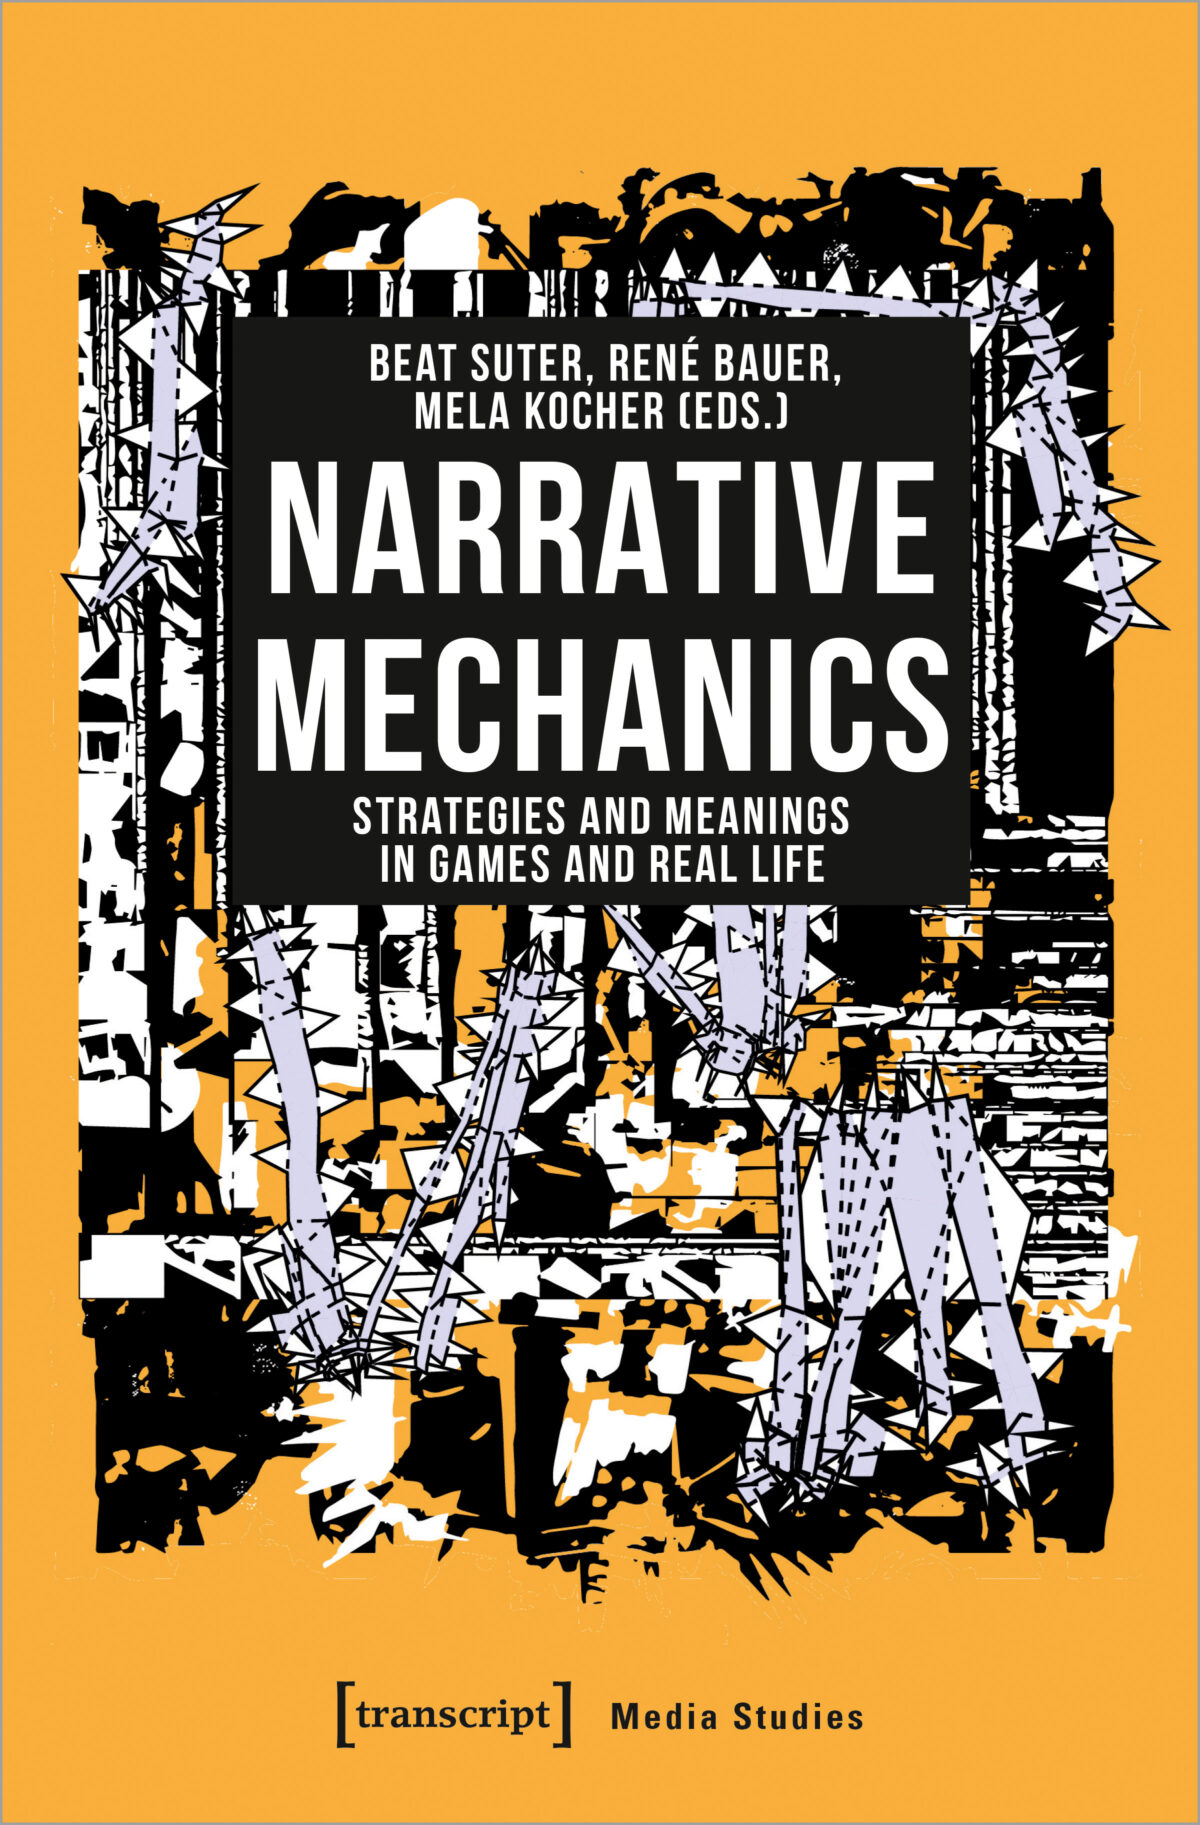 Ludic Meanders through Defictionalization: The Narrative Mechanics of Art Games in the public spaces of politics.